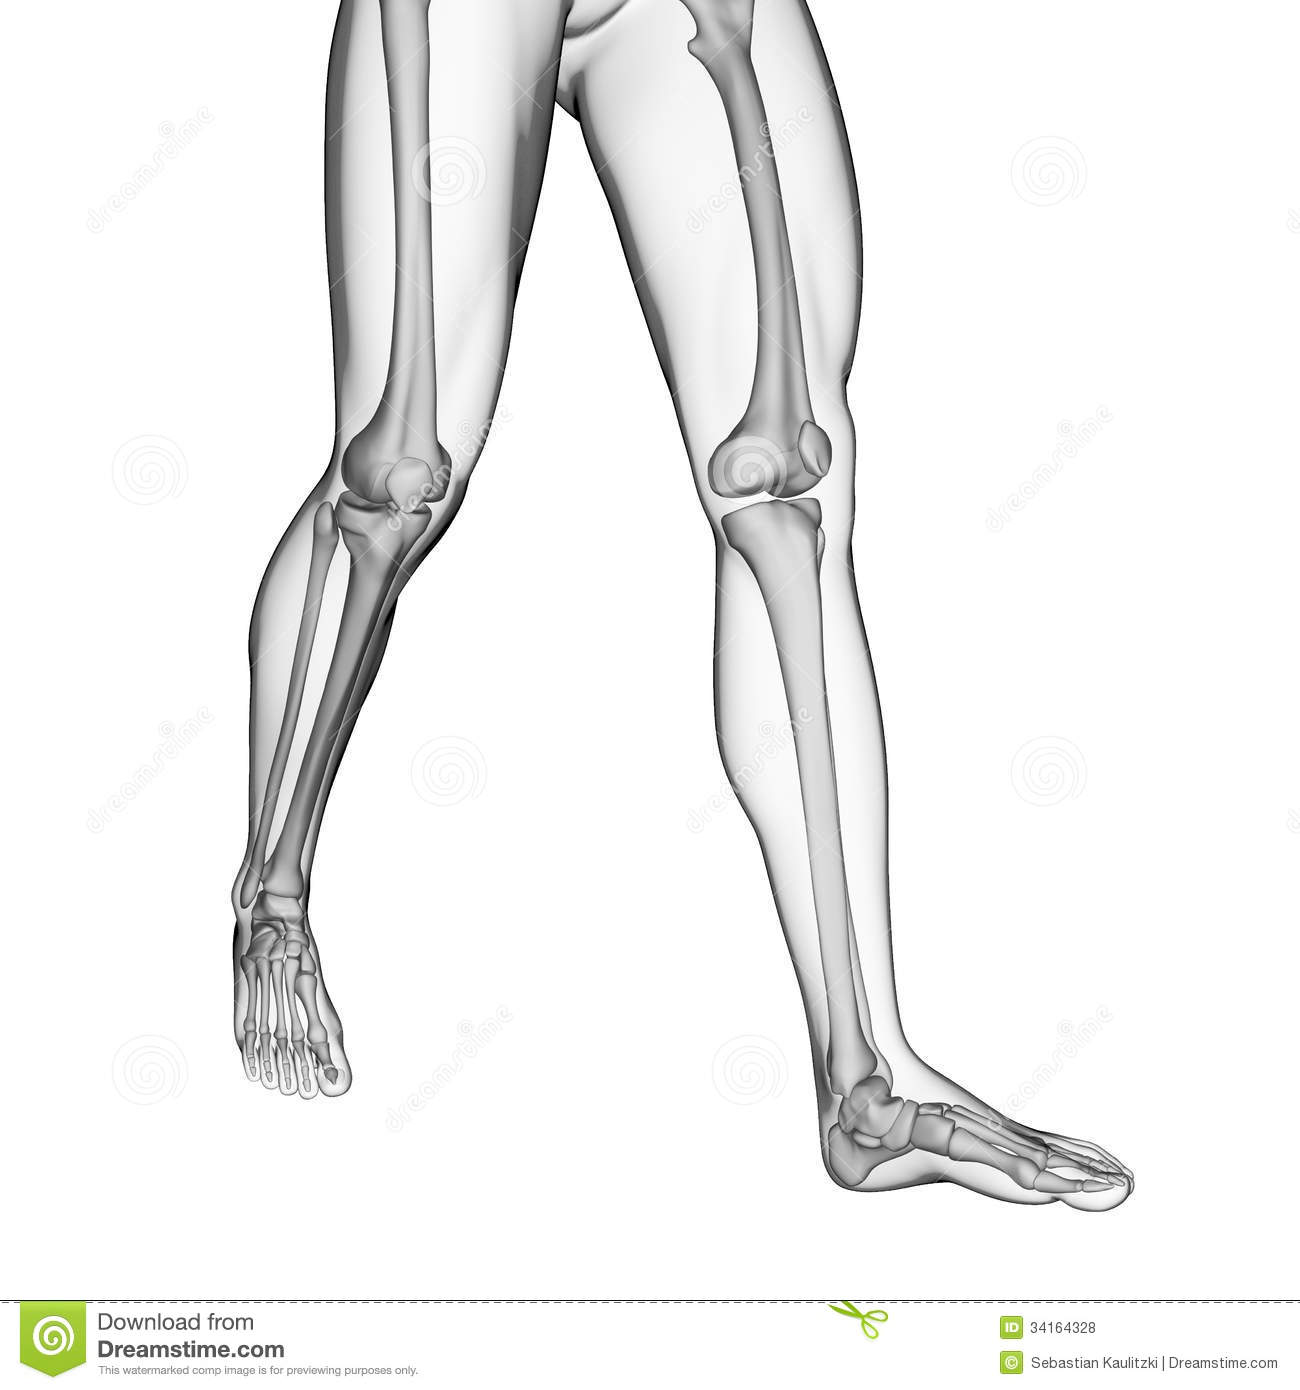 Bones Of The Legs Stock Illustration Illustration Of Knee 34164328